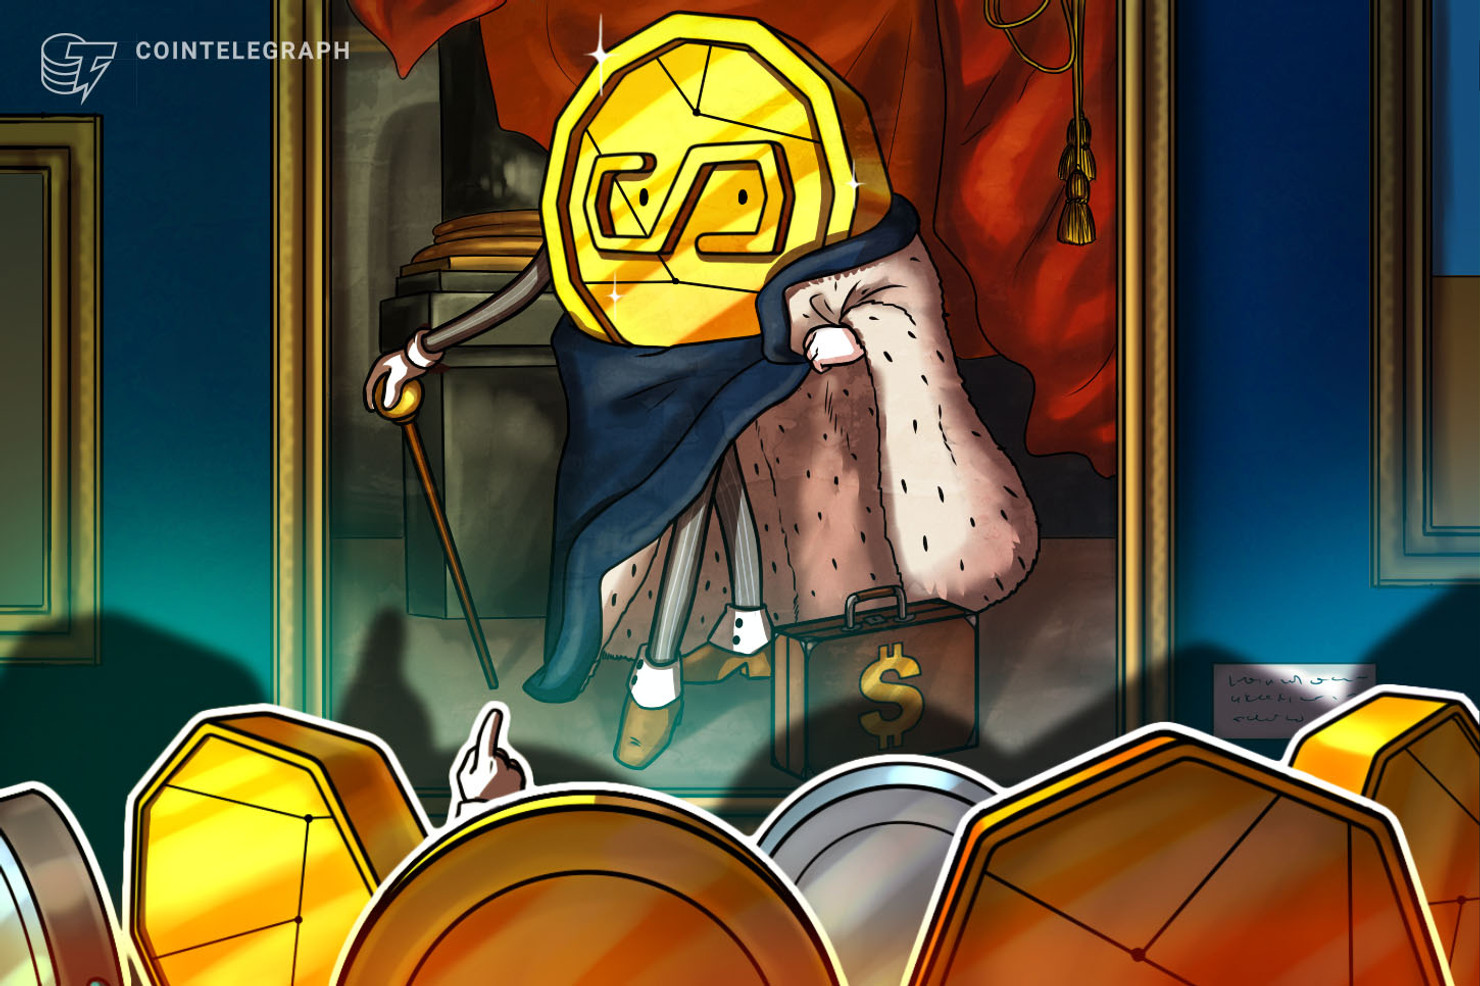 February 2019 Calendar Holddai DAI Has Been Struggling to Maintain Its $1 Peg, but the MakerDAO